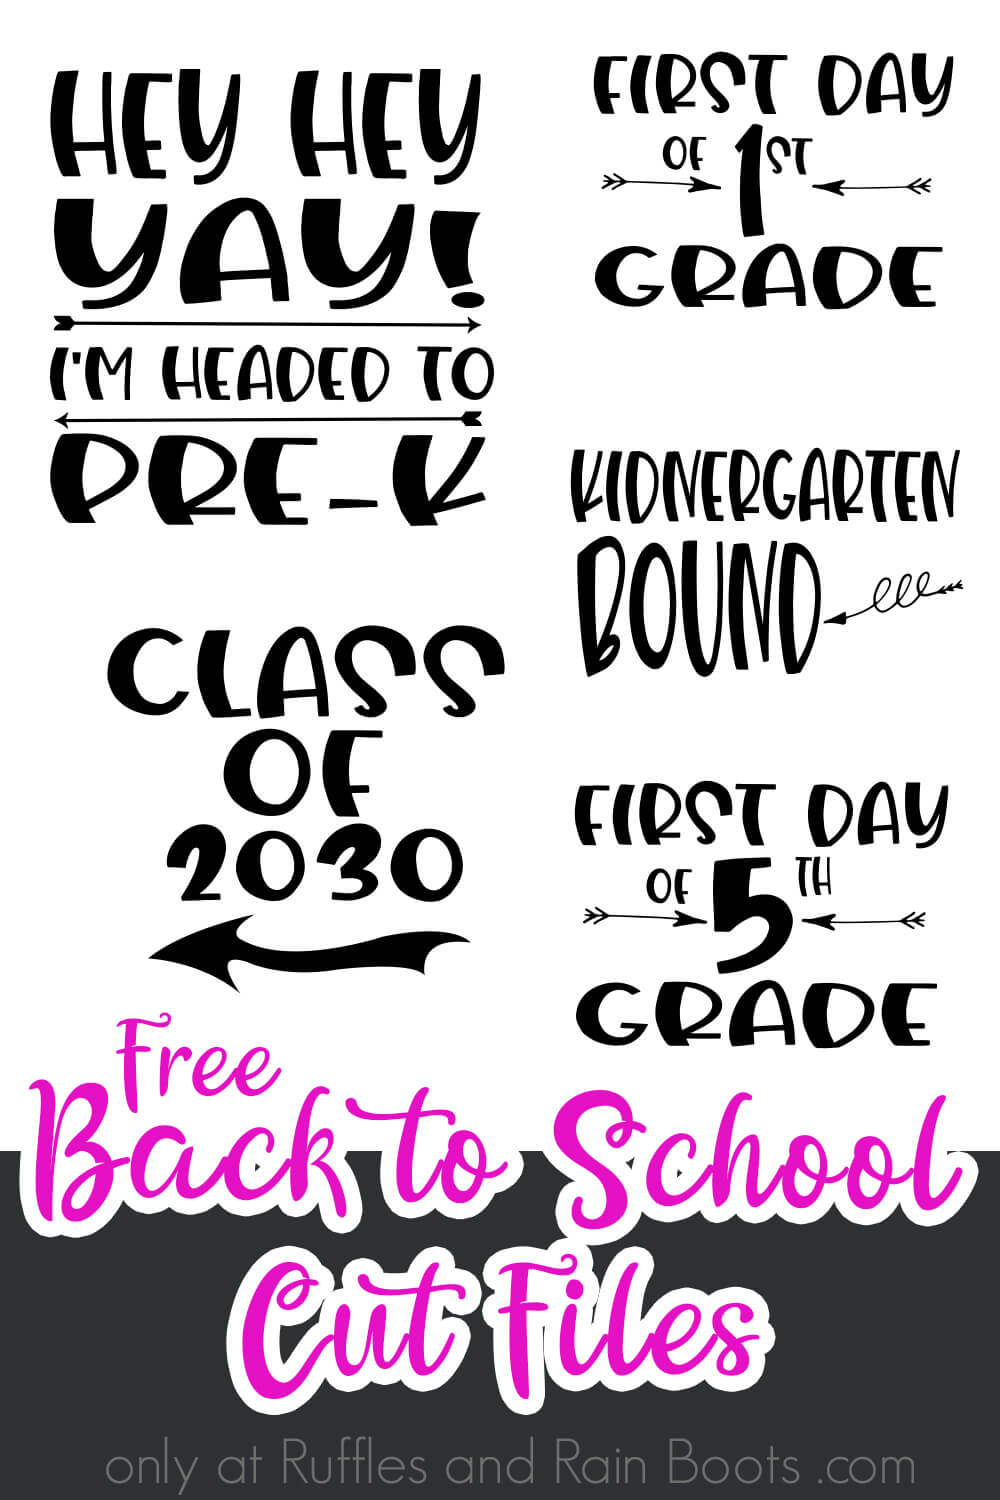 collage of various free back to school svg collection items with text which reads free back to school cut files